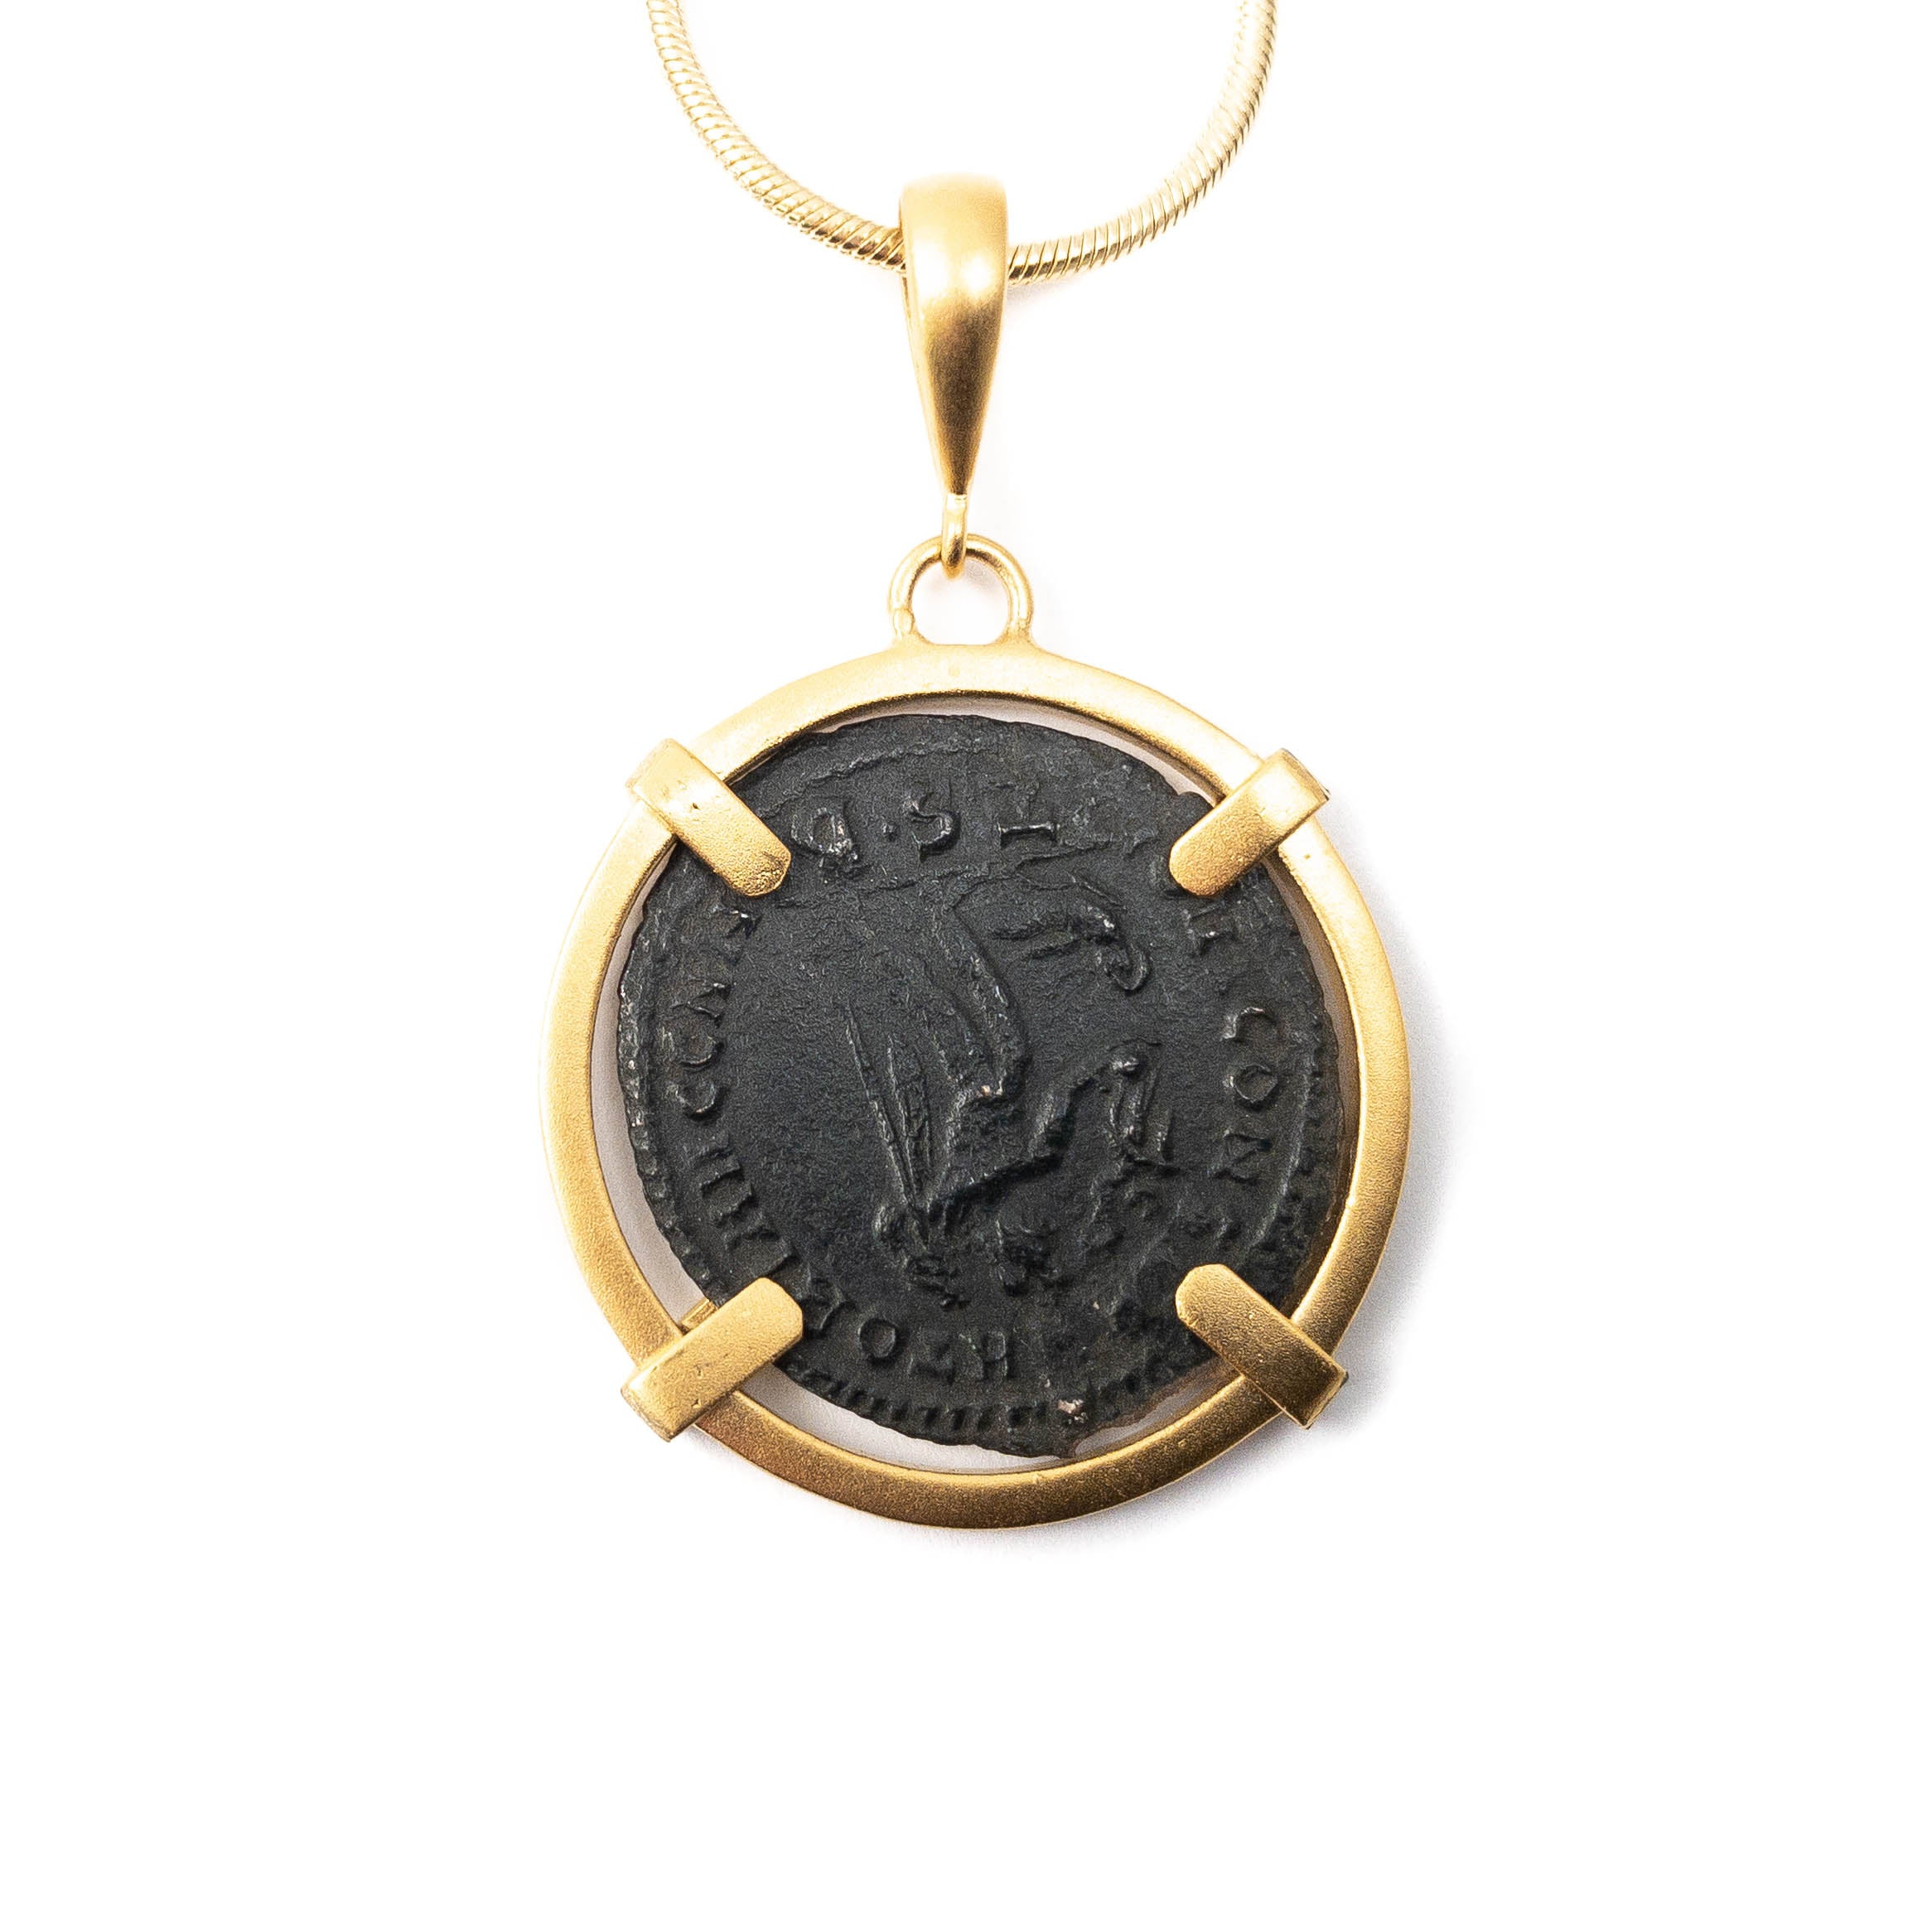 Genuine Ancient Roman Coin Necklace (CONSTANTINE THE GREAT, 306-337 A.D.)